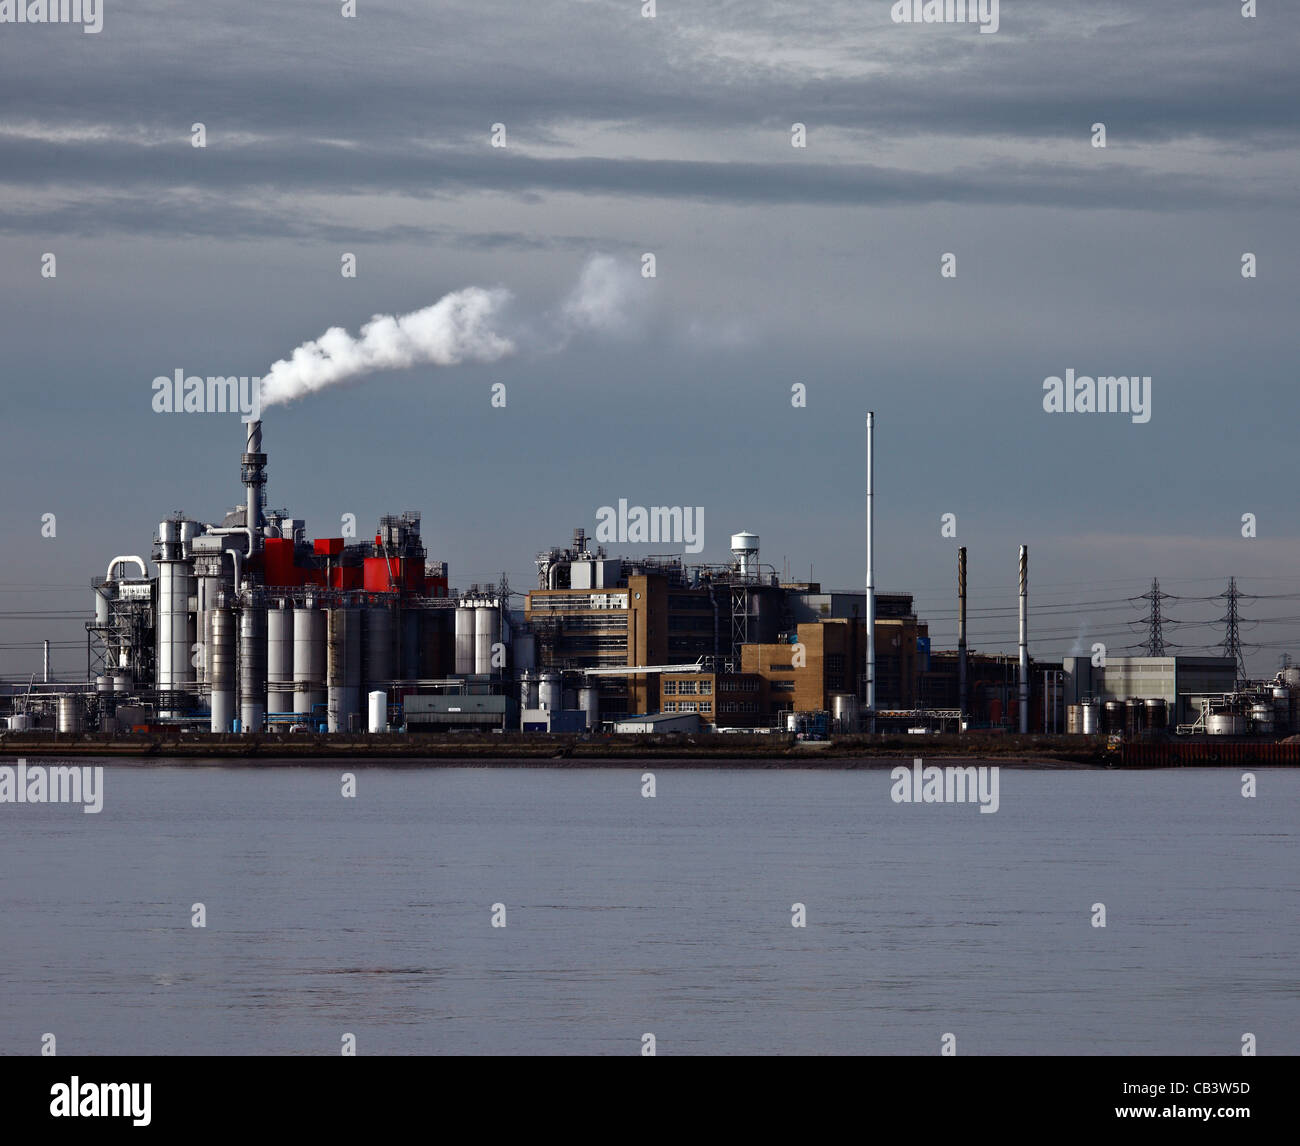 Proctor and Gamble chemical factory, West Thurrock, River Thames, London. - Stock Image